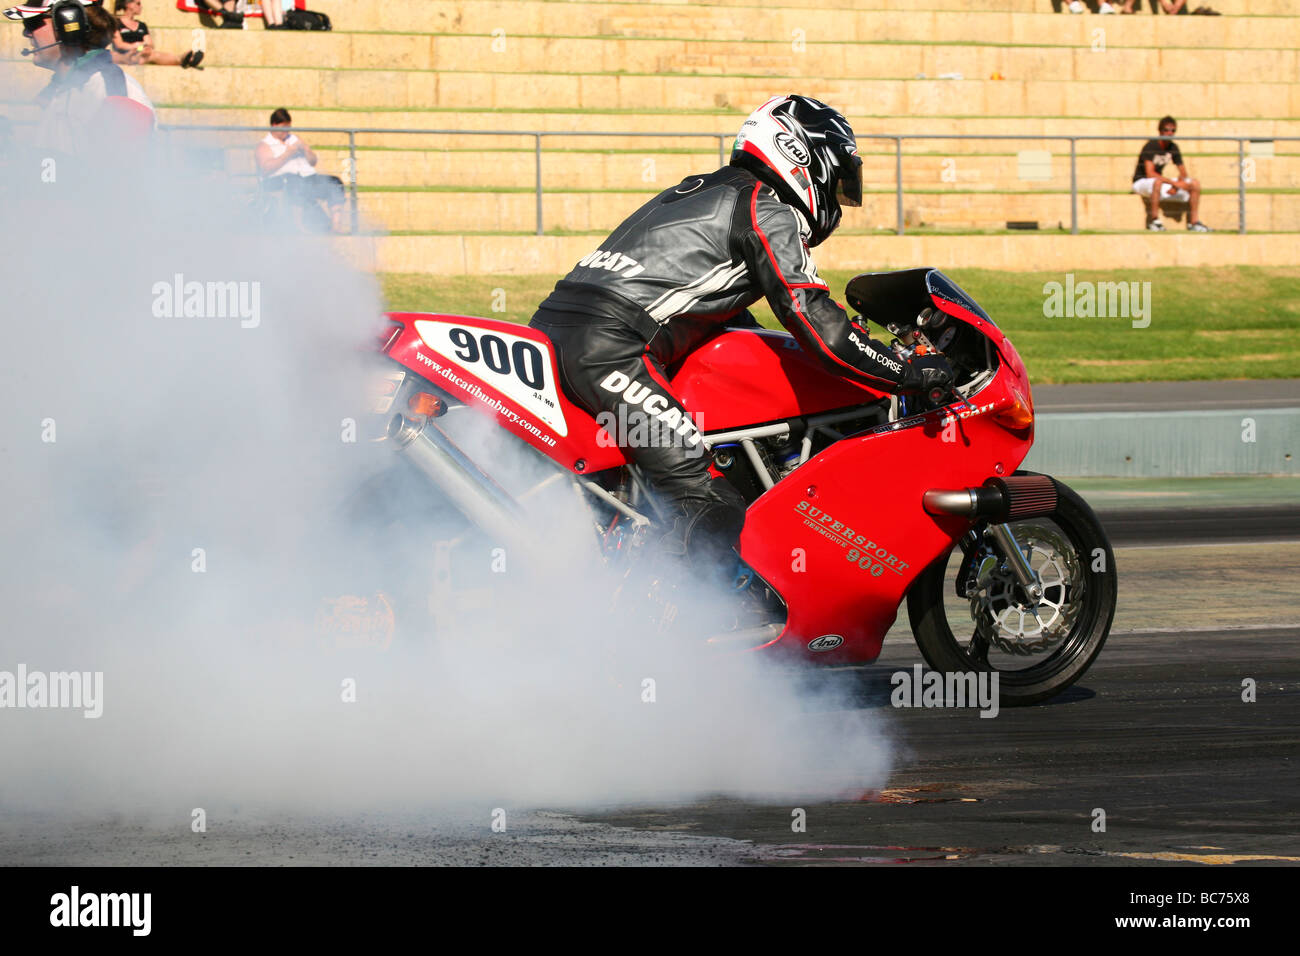 Turbocharged drag racing Ducati 900SS motorcycle performing burnout - Stock Image